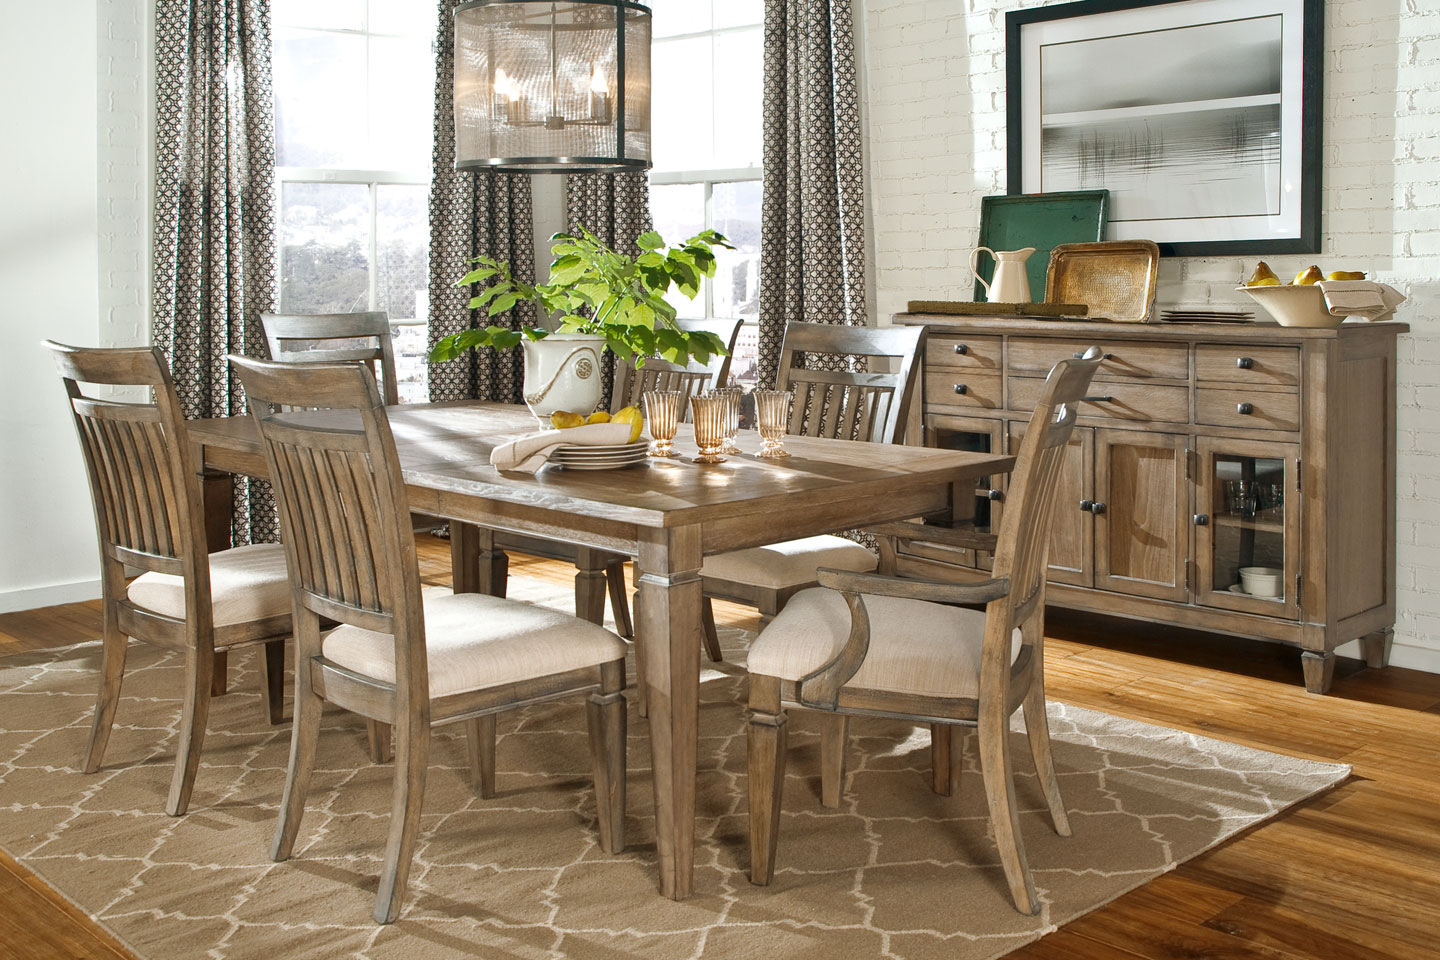 Rustic Dining Room Set: Contemporary and Elegant